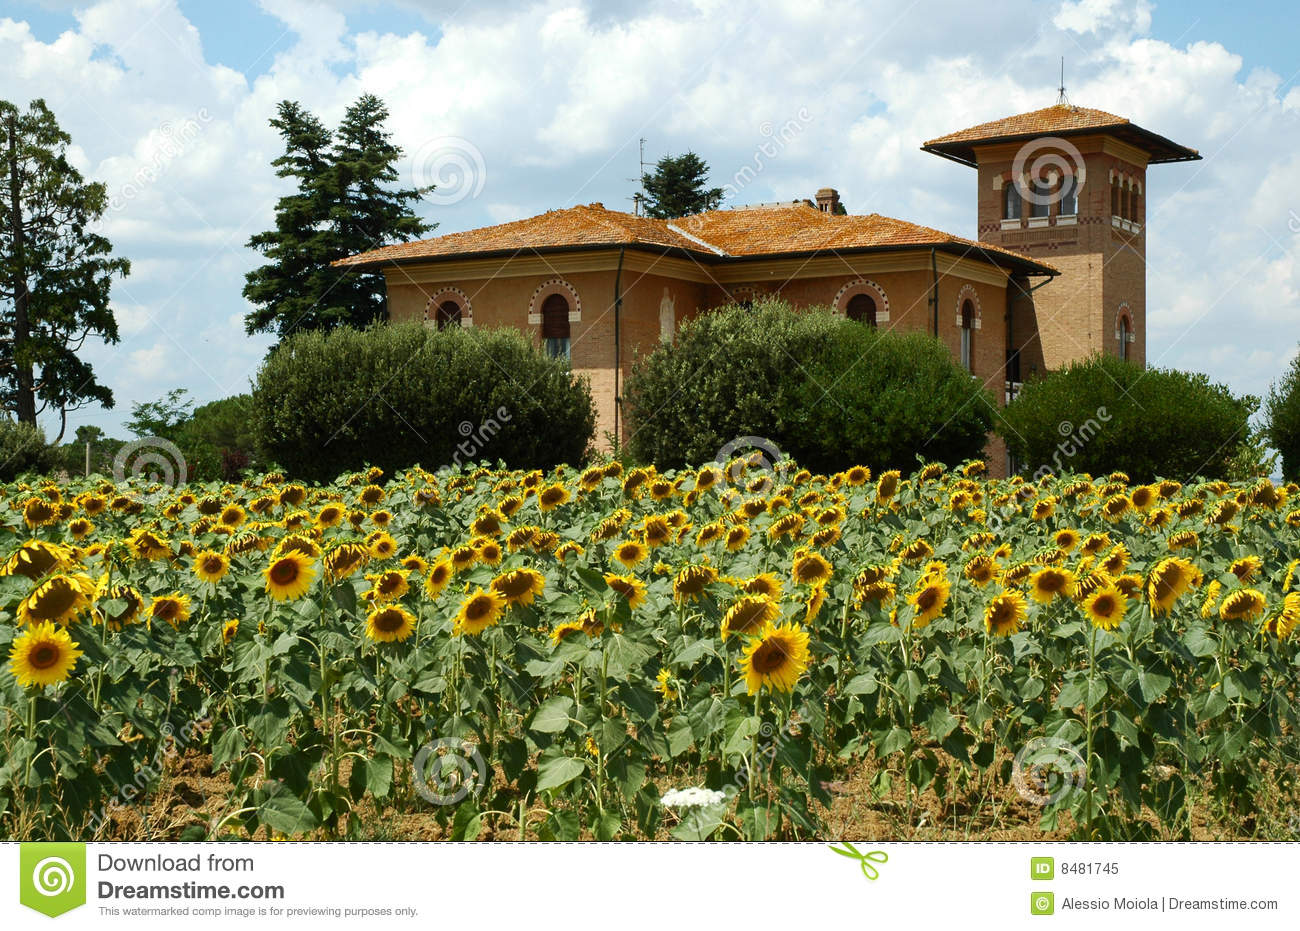 Royalty Free Stock Photo Tuscany Farm Sunflowers Image8481745 also Small Country Cottage House Plans Small Country Cottage Small C13a71da7e7207ef furthermore Country Harvest Table together with Farm Fence Every Journey Starts With A Path Mike Savad in addition Citrus Zen Garden 1487627. on country farmhouse plans